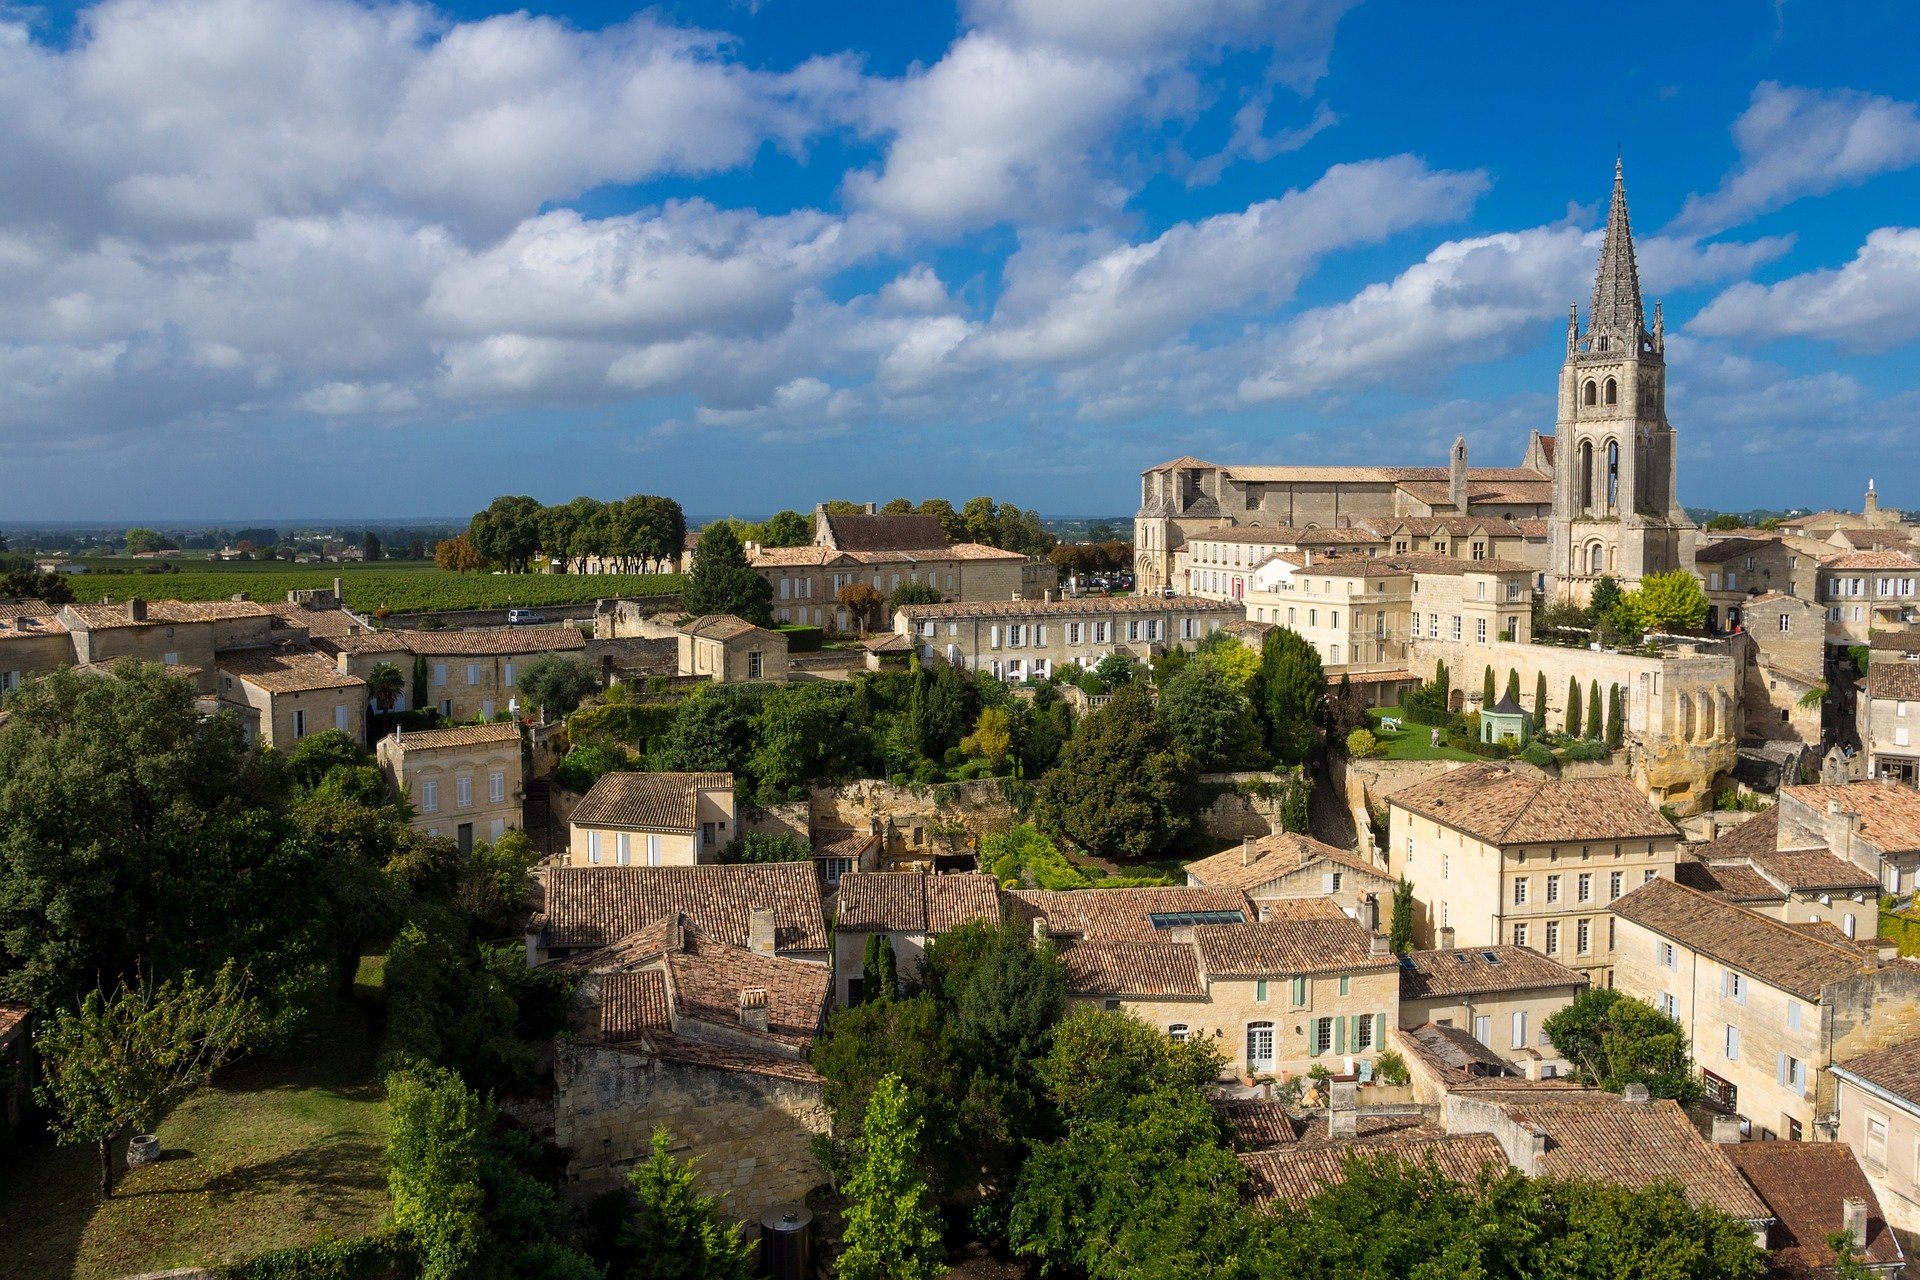 Overview of Saint Emilion Old city